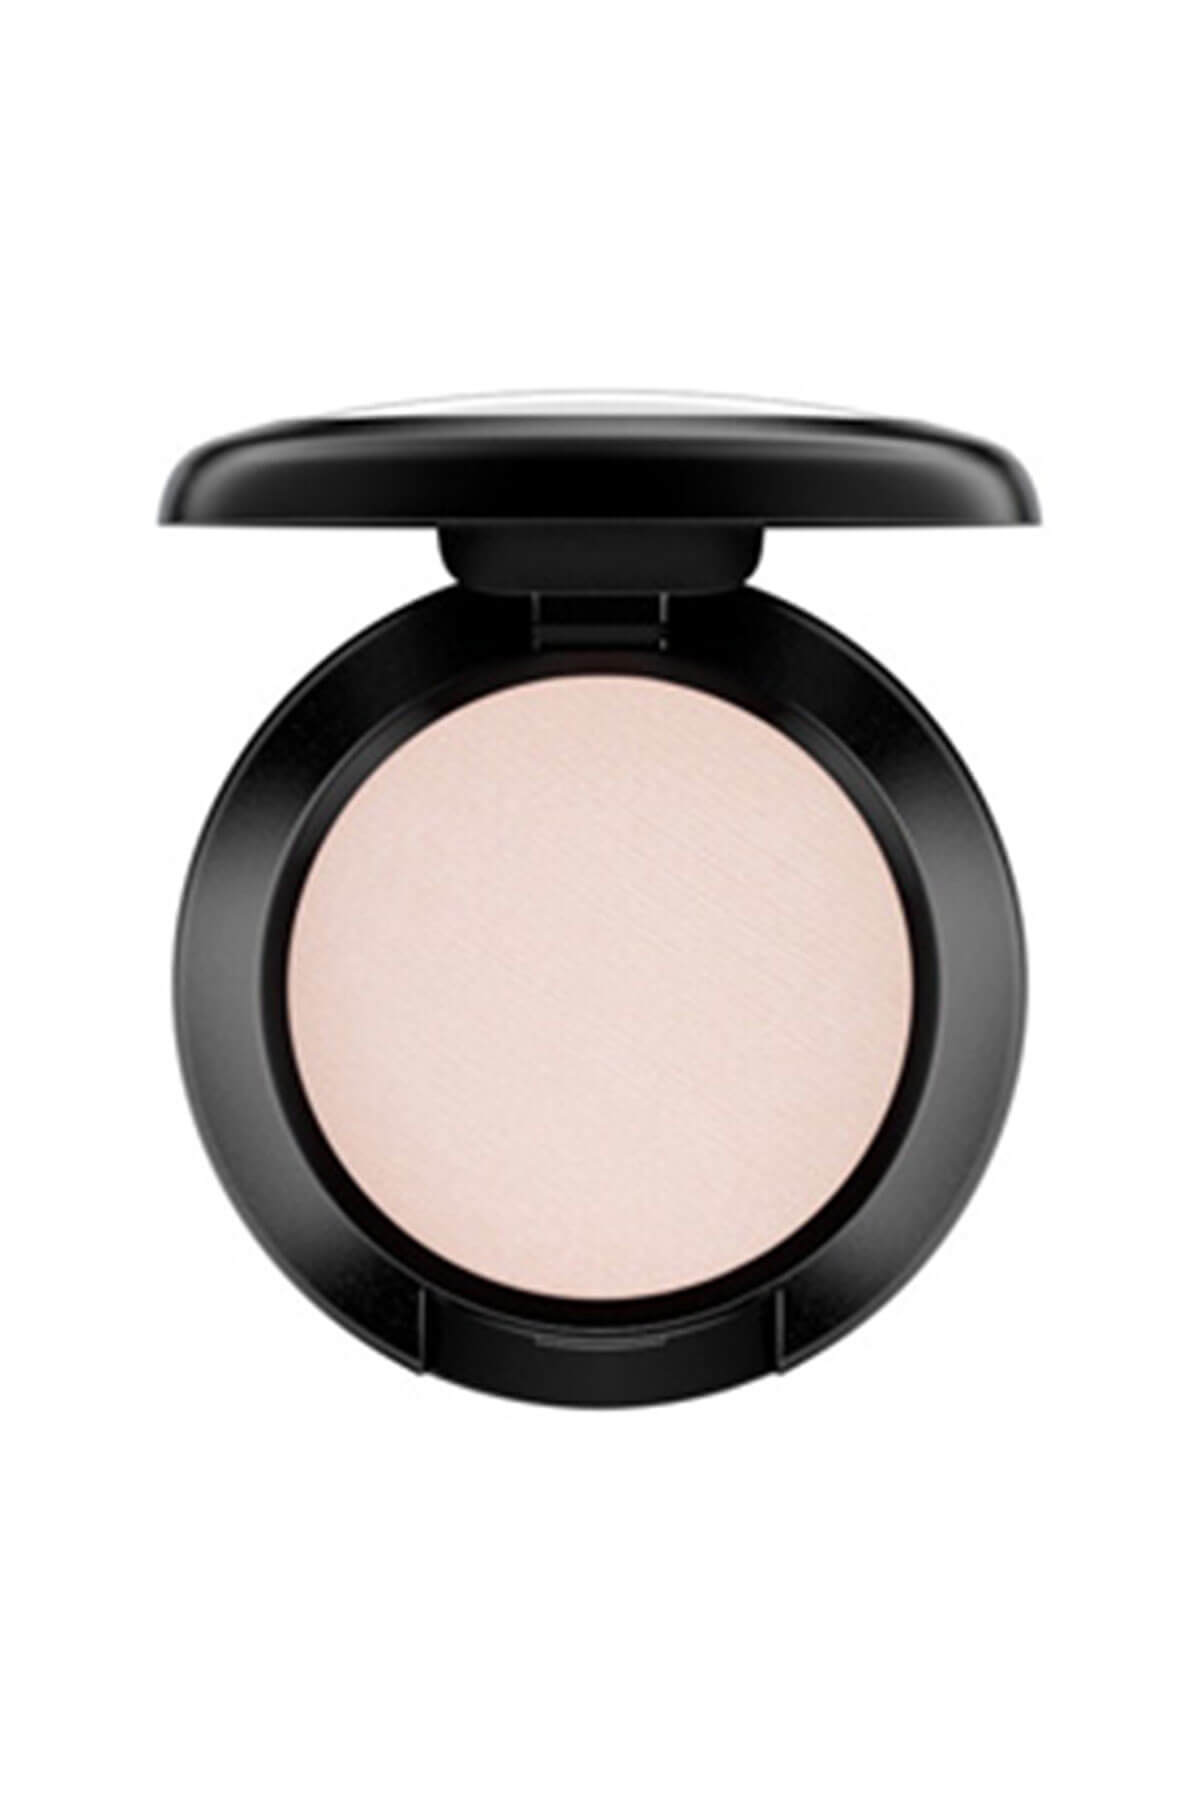 M.A.C Göz Farı - Eye Shadow Shroom 1.5 g 773602043781 1